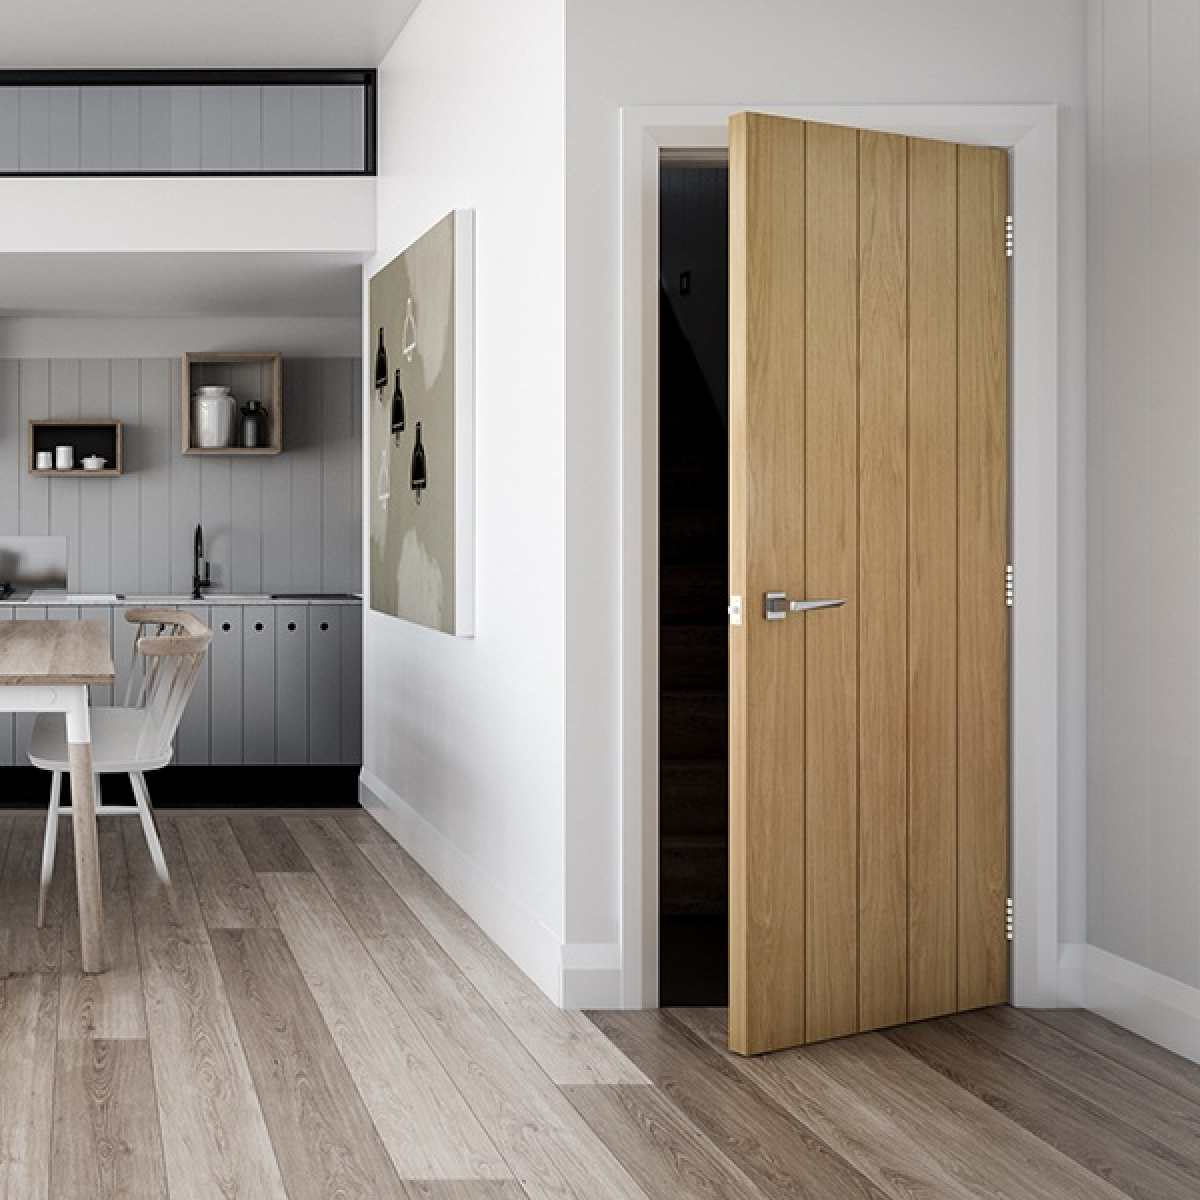 Galway oak lifestyle websters Image by Websters Timber